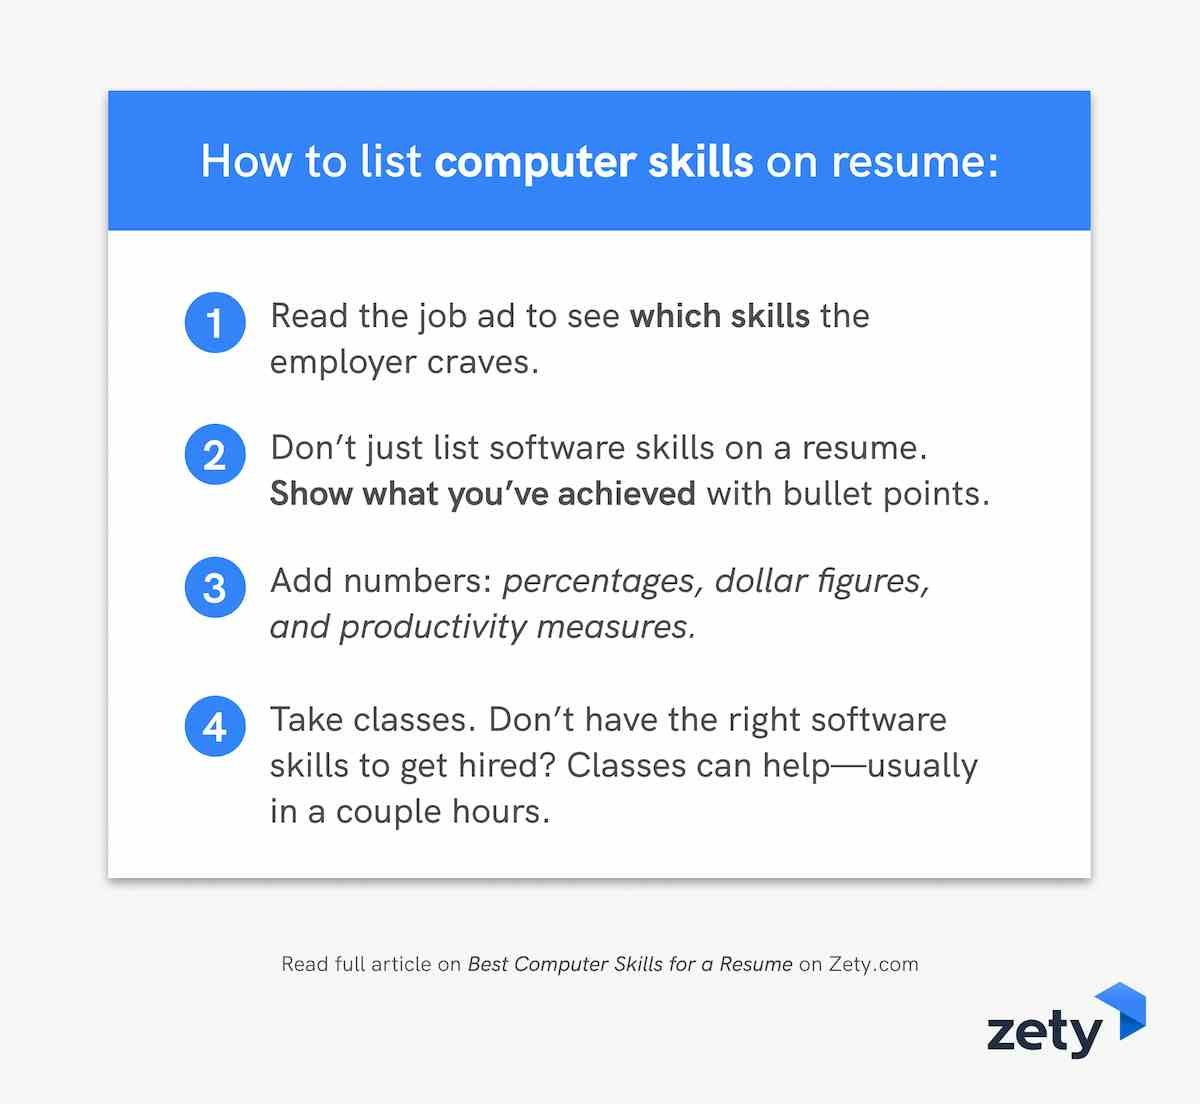 How to list computer skills on resume